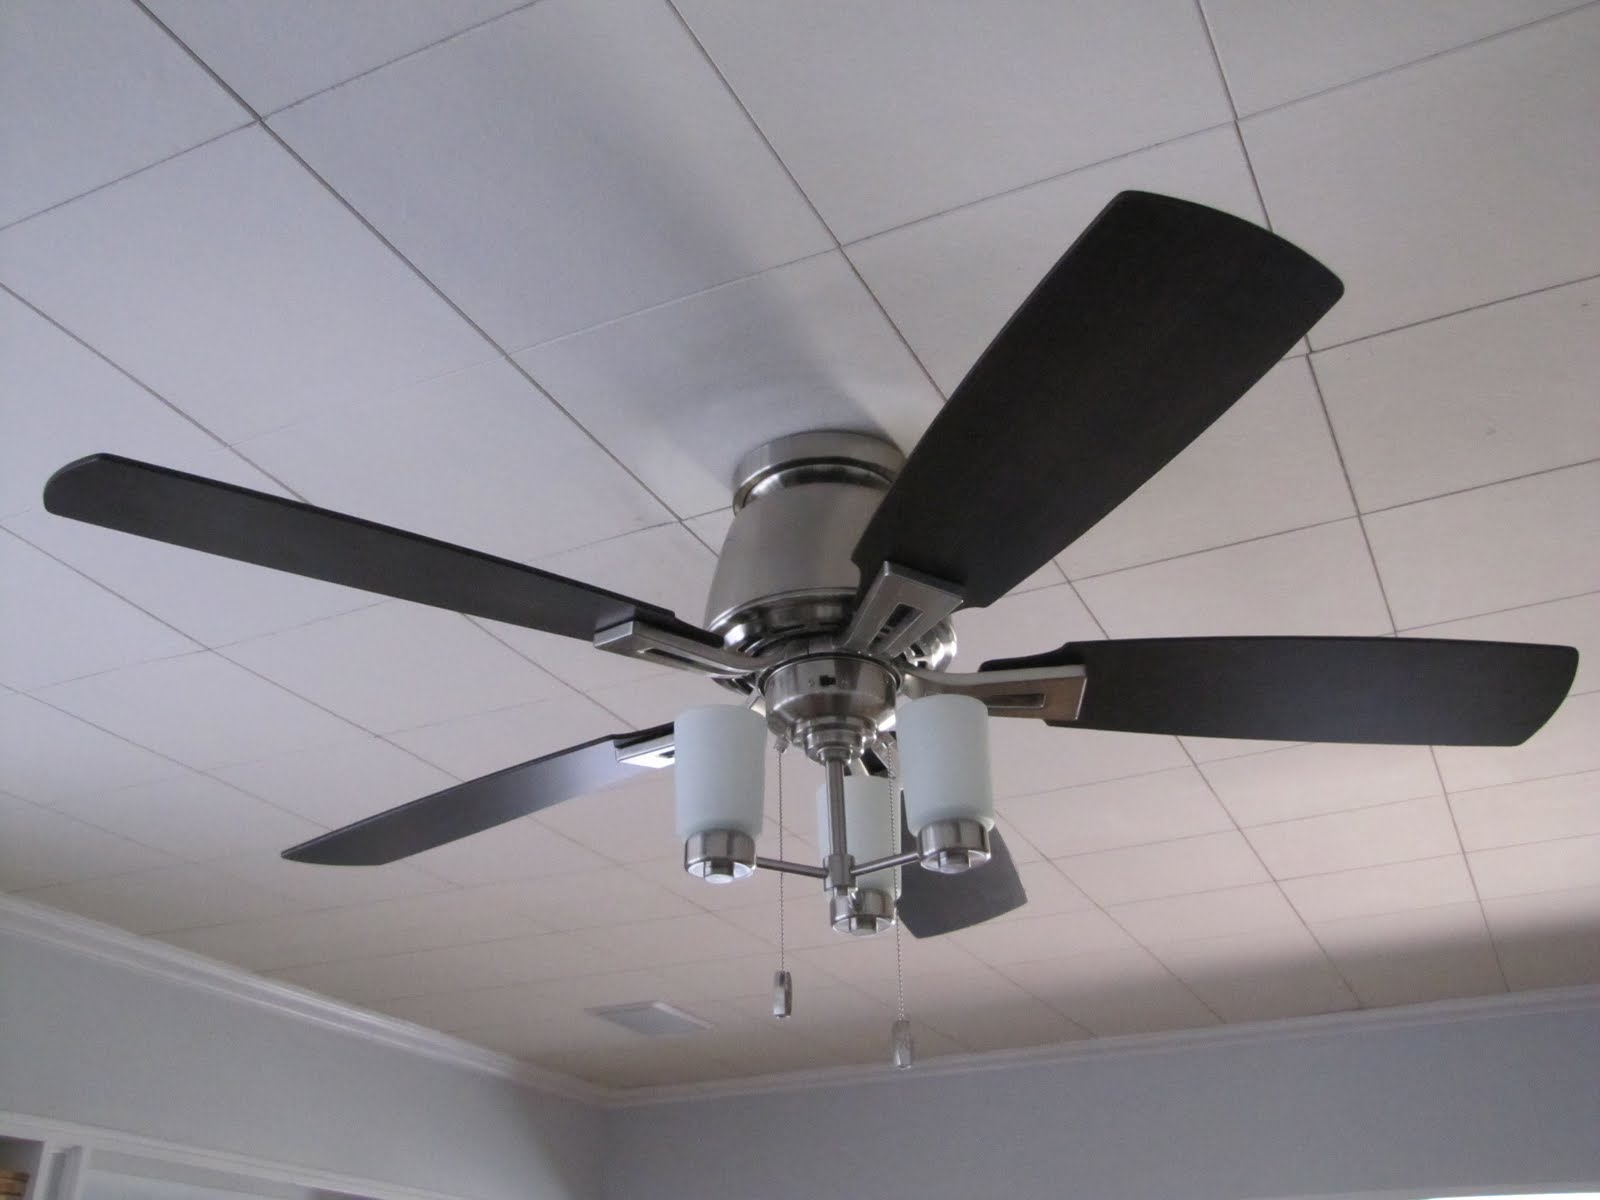 refundable vaulted fan ceiling outdoor fans for best india hunter ceilings with lighting remote